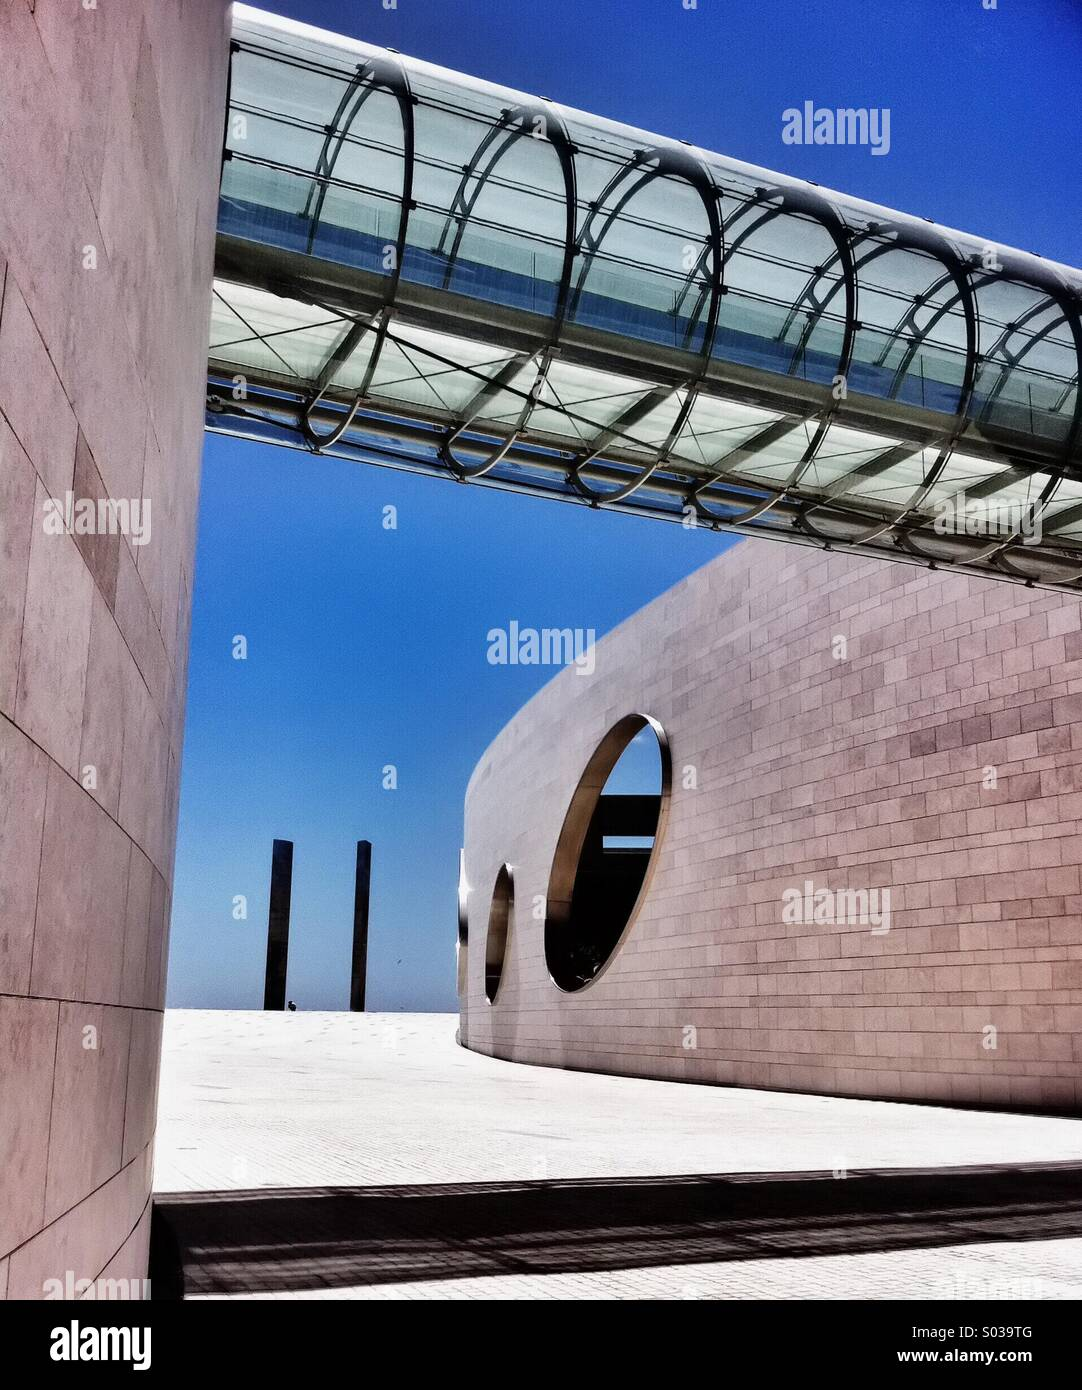 Champalimaud center for the unknown - Stock Image